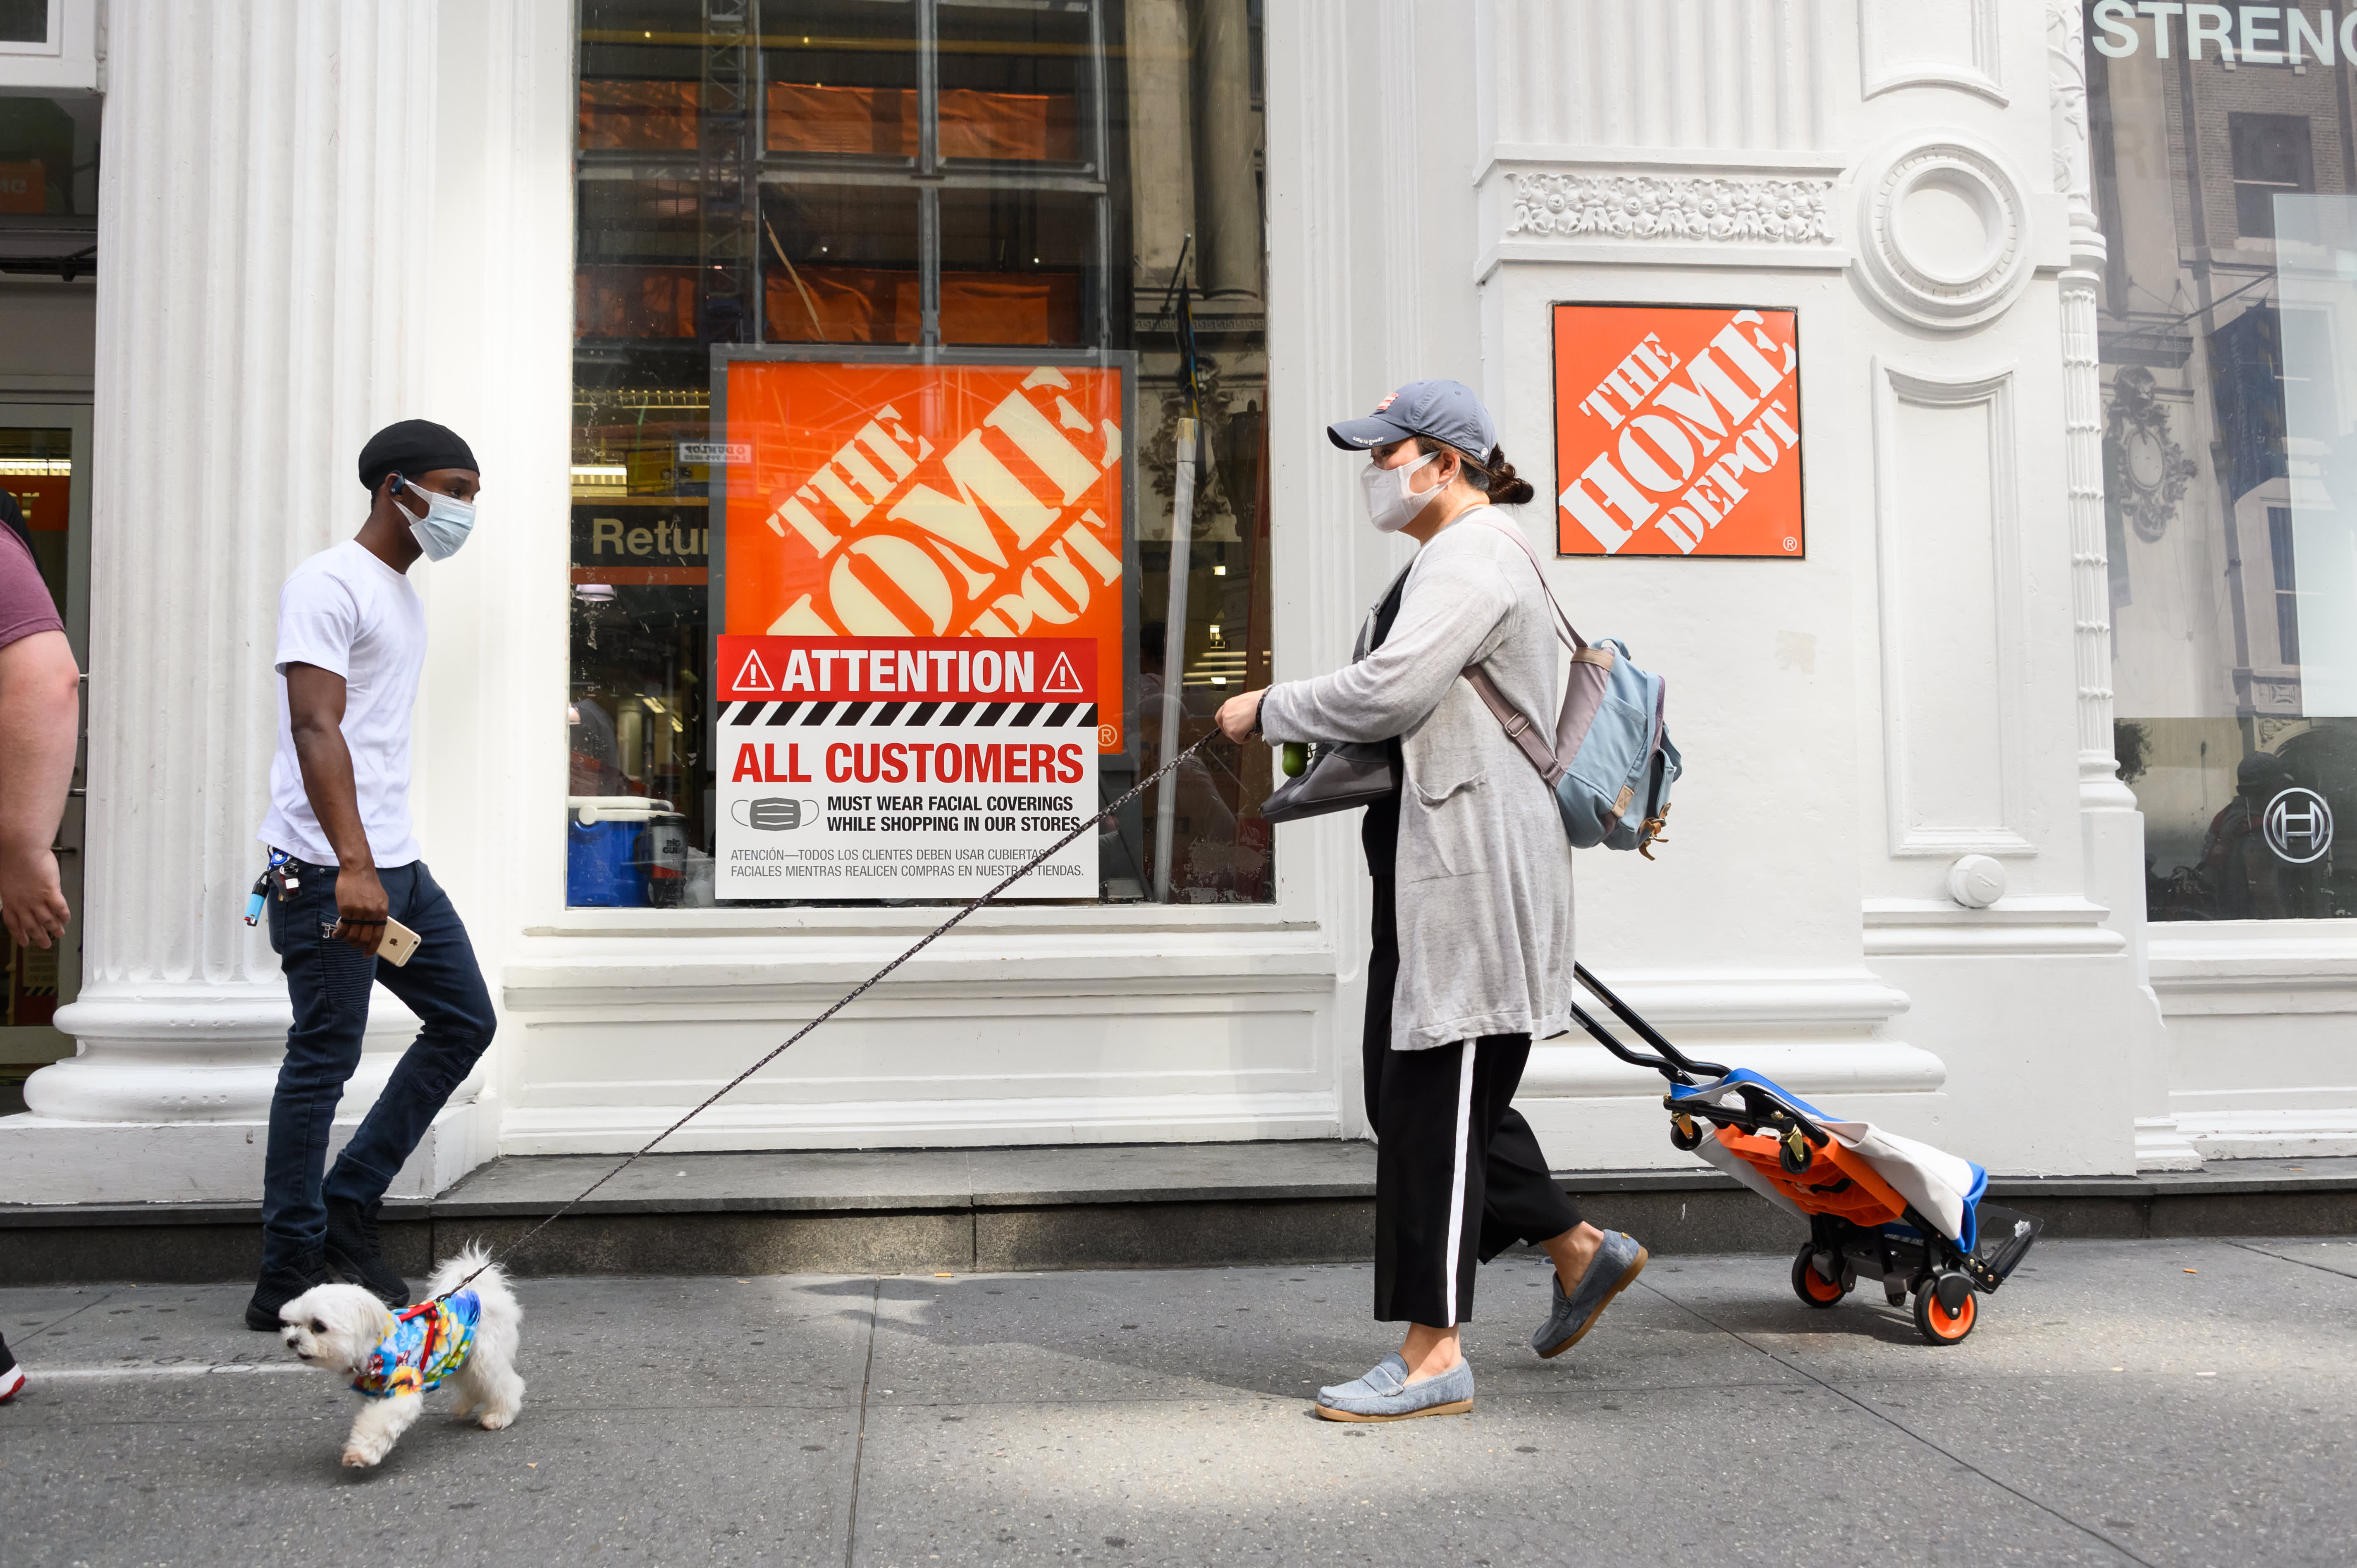 Home Depot Signs Lease To Take Over New York Bed Bath Beyond Space